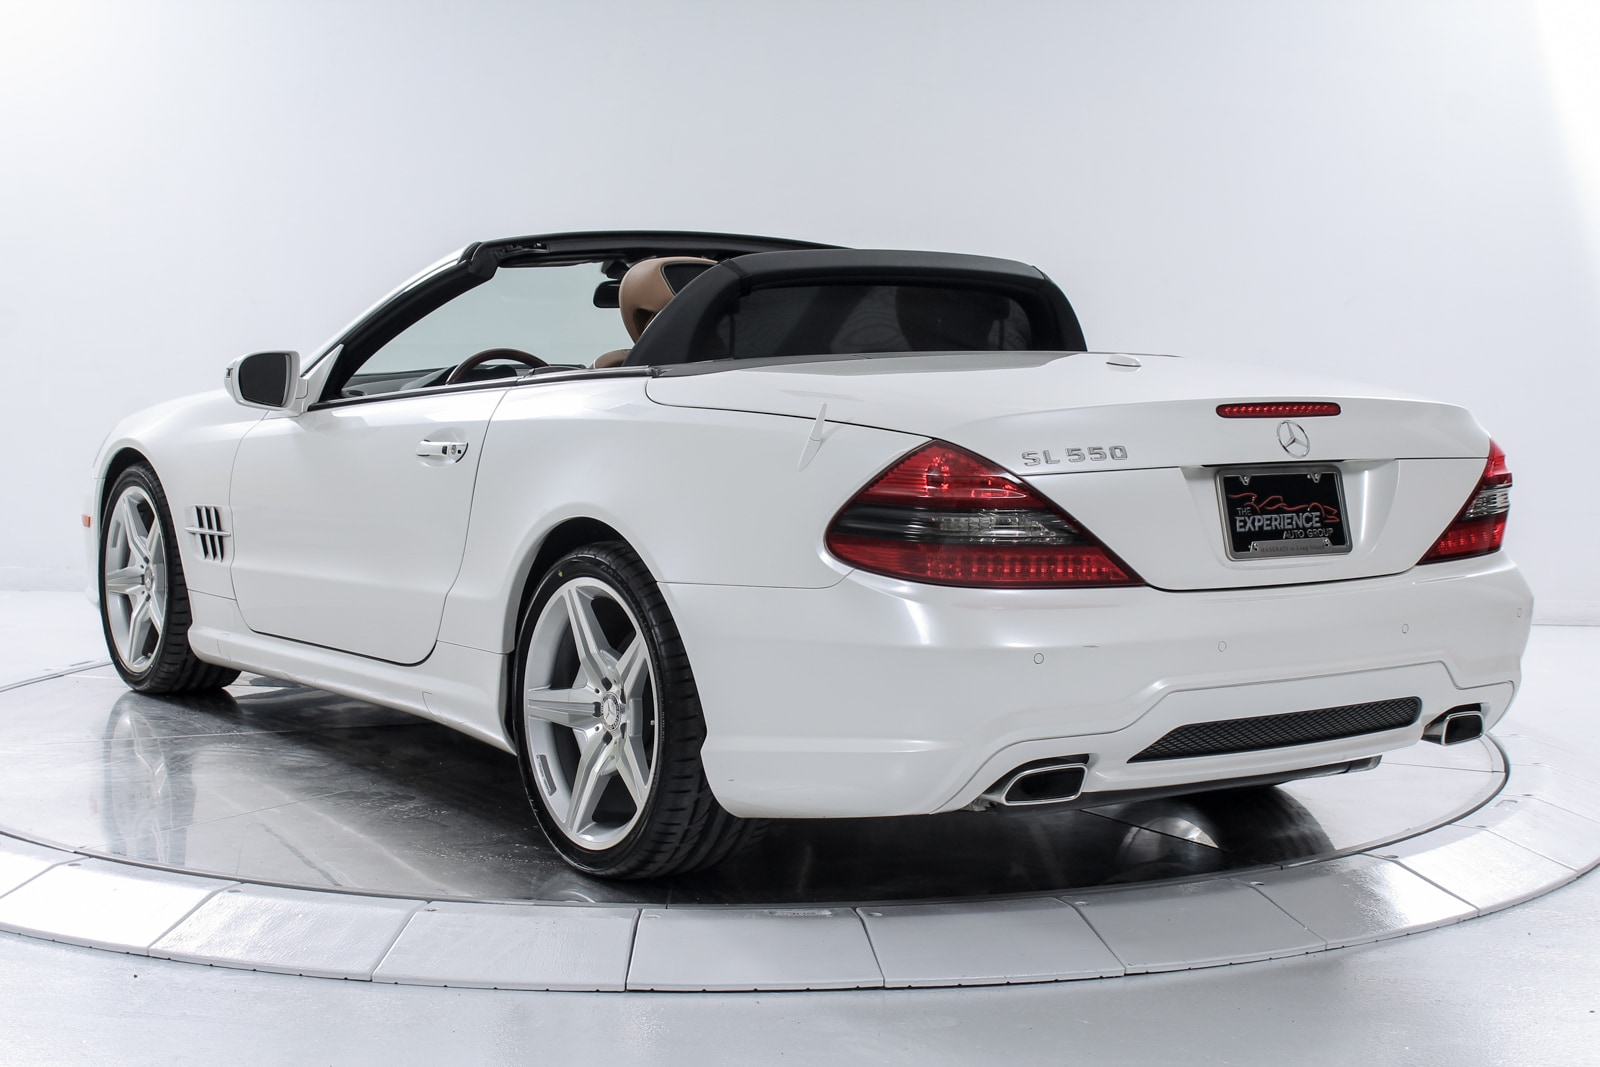 used 2011 mercedes benz sl550 for sale plainview near long island ny vin wdbsk7ba1bf161411. Black Bedroom Furniture Sets. Home Design Ideas